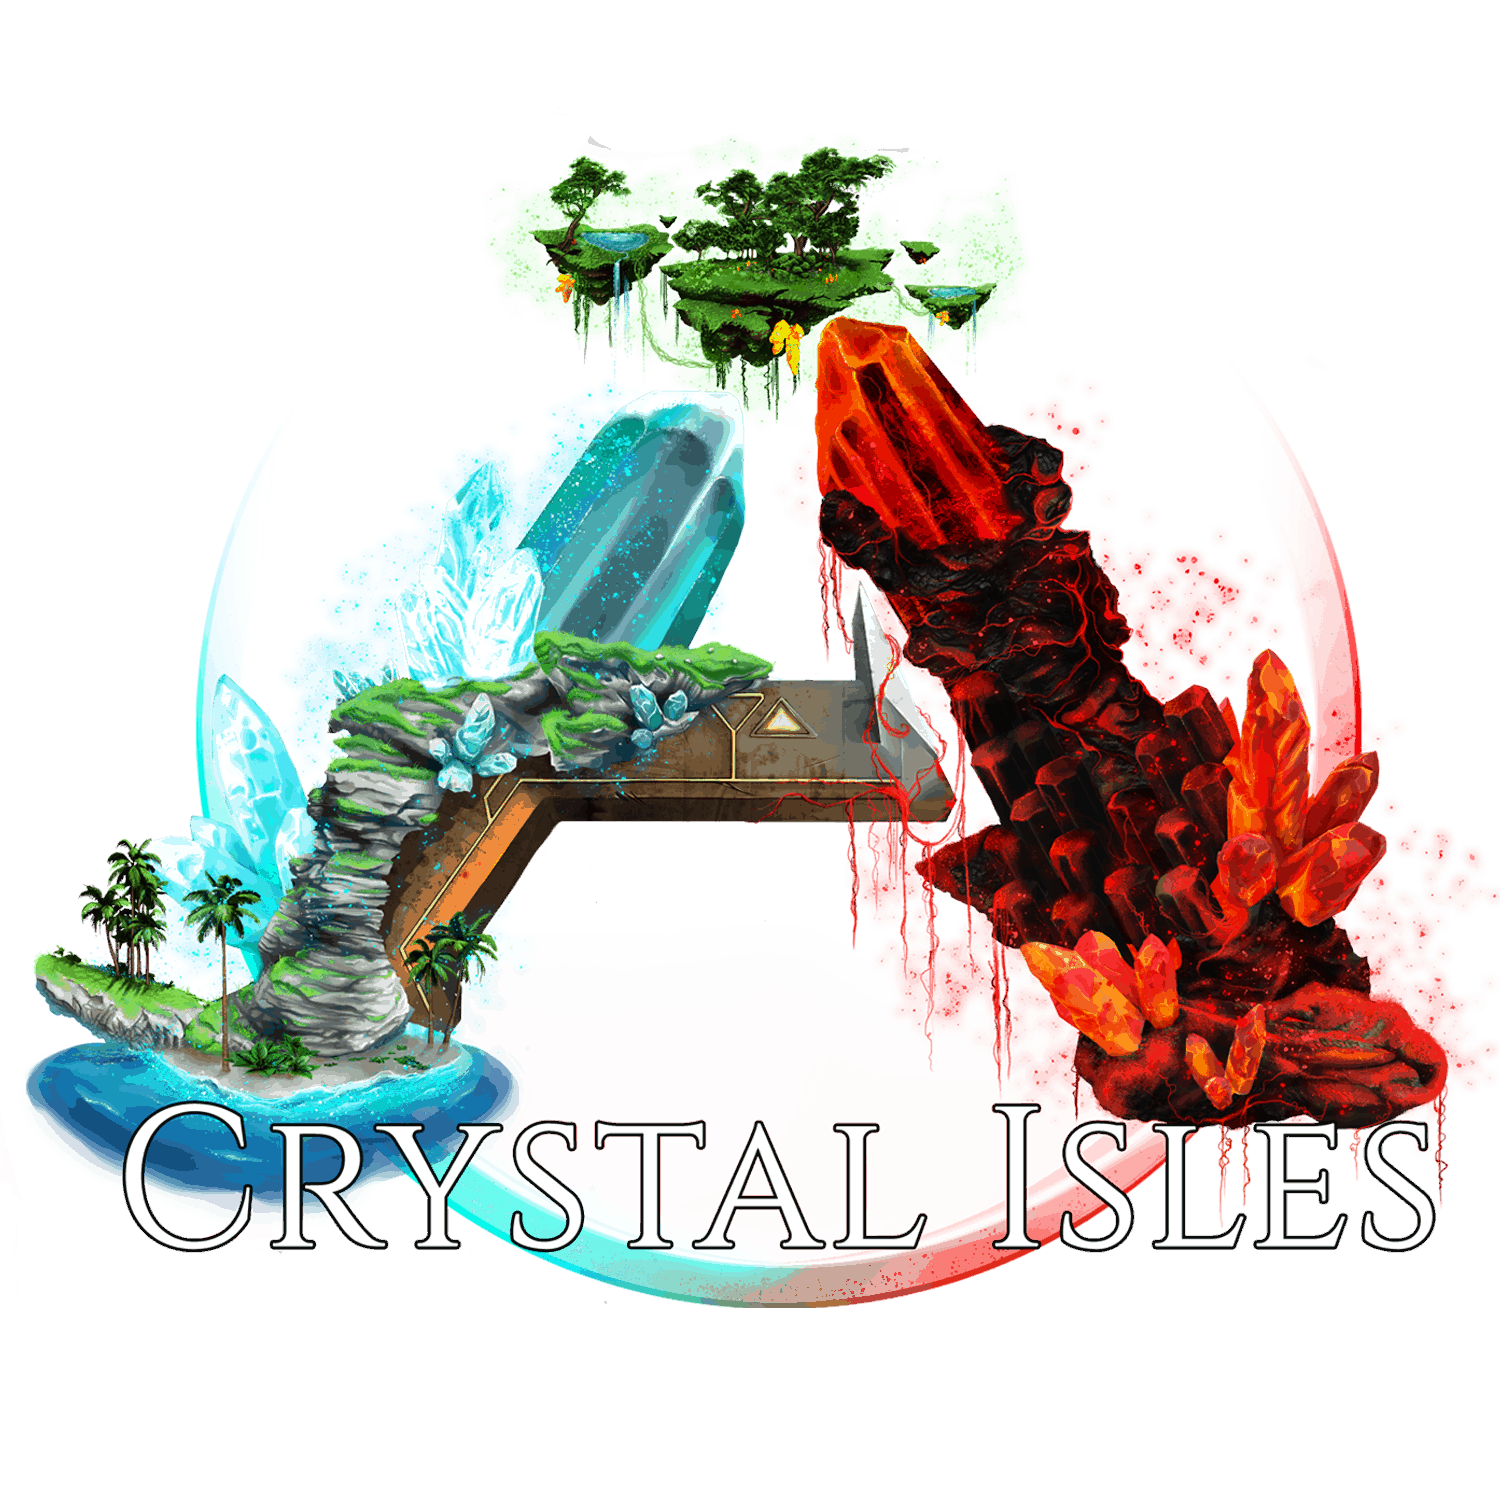 ark survival evolved crystal isles image